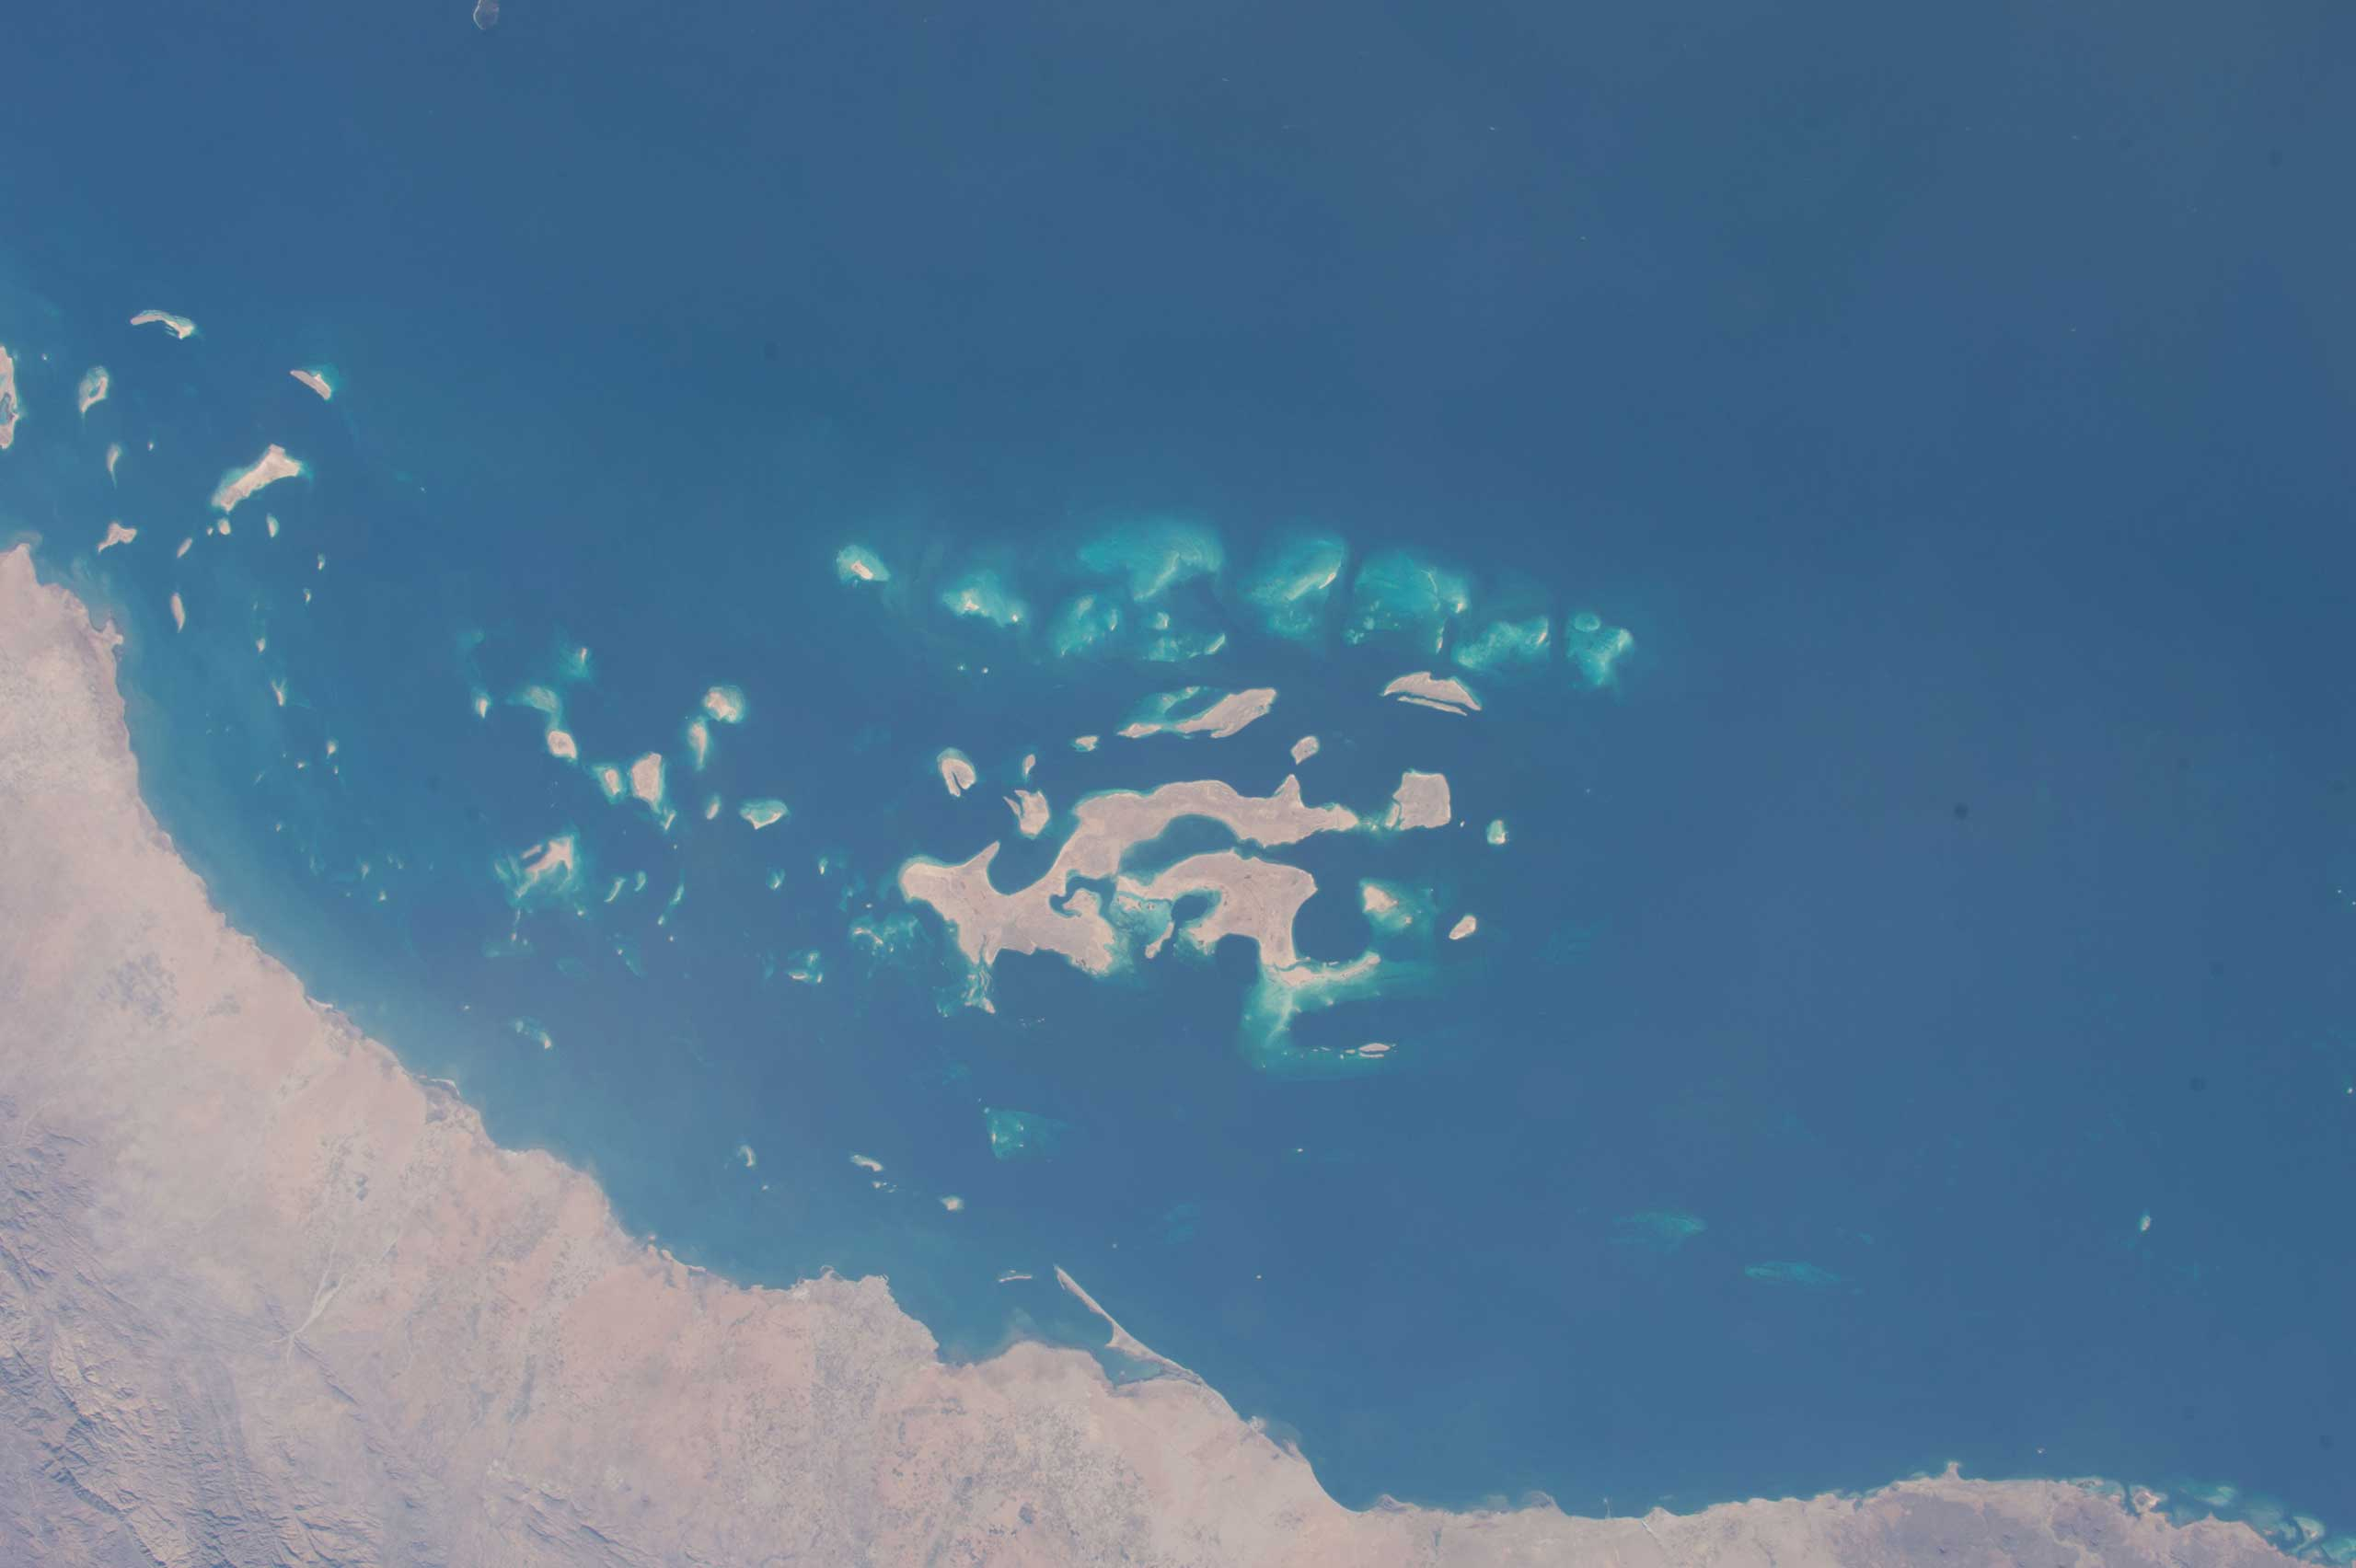 Twitter image from US Astronaut Terry Virts of the Red Sea in the Middle East on Feb. 09, 2015. Terry labeled it  earth art